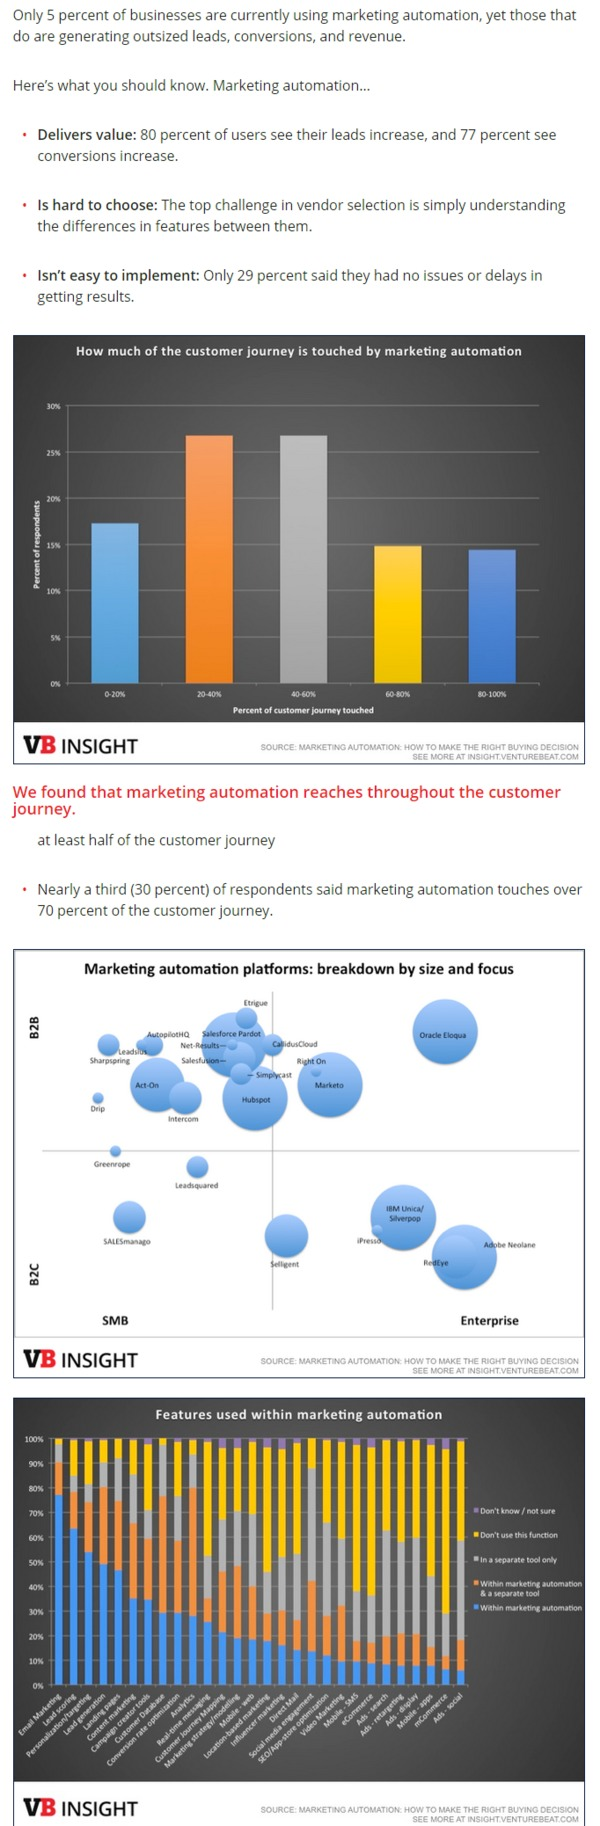 Marketing automation yields real value, yet is hard to choose and implement - VentureBeat | The Marketing Technology Alert | Scoop.it